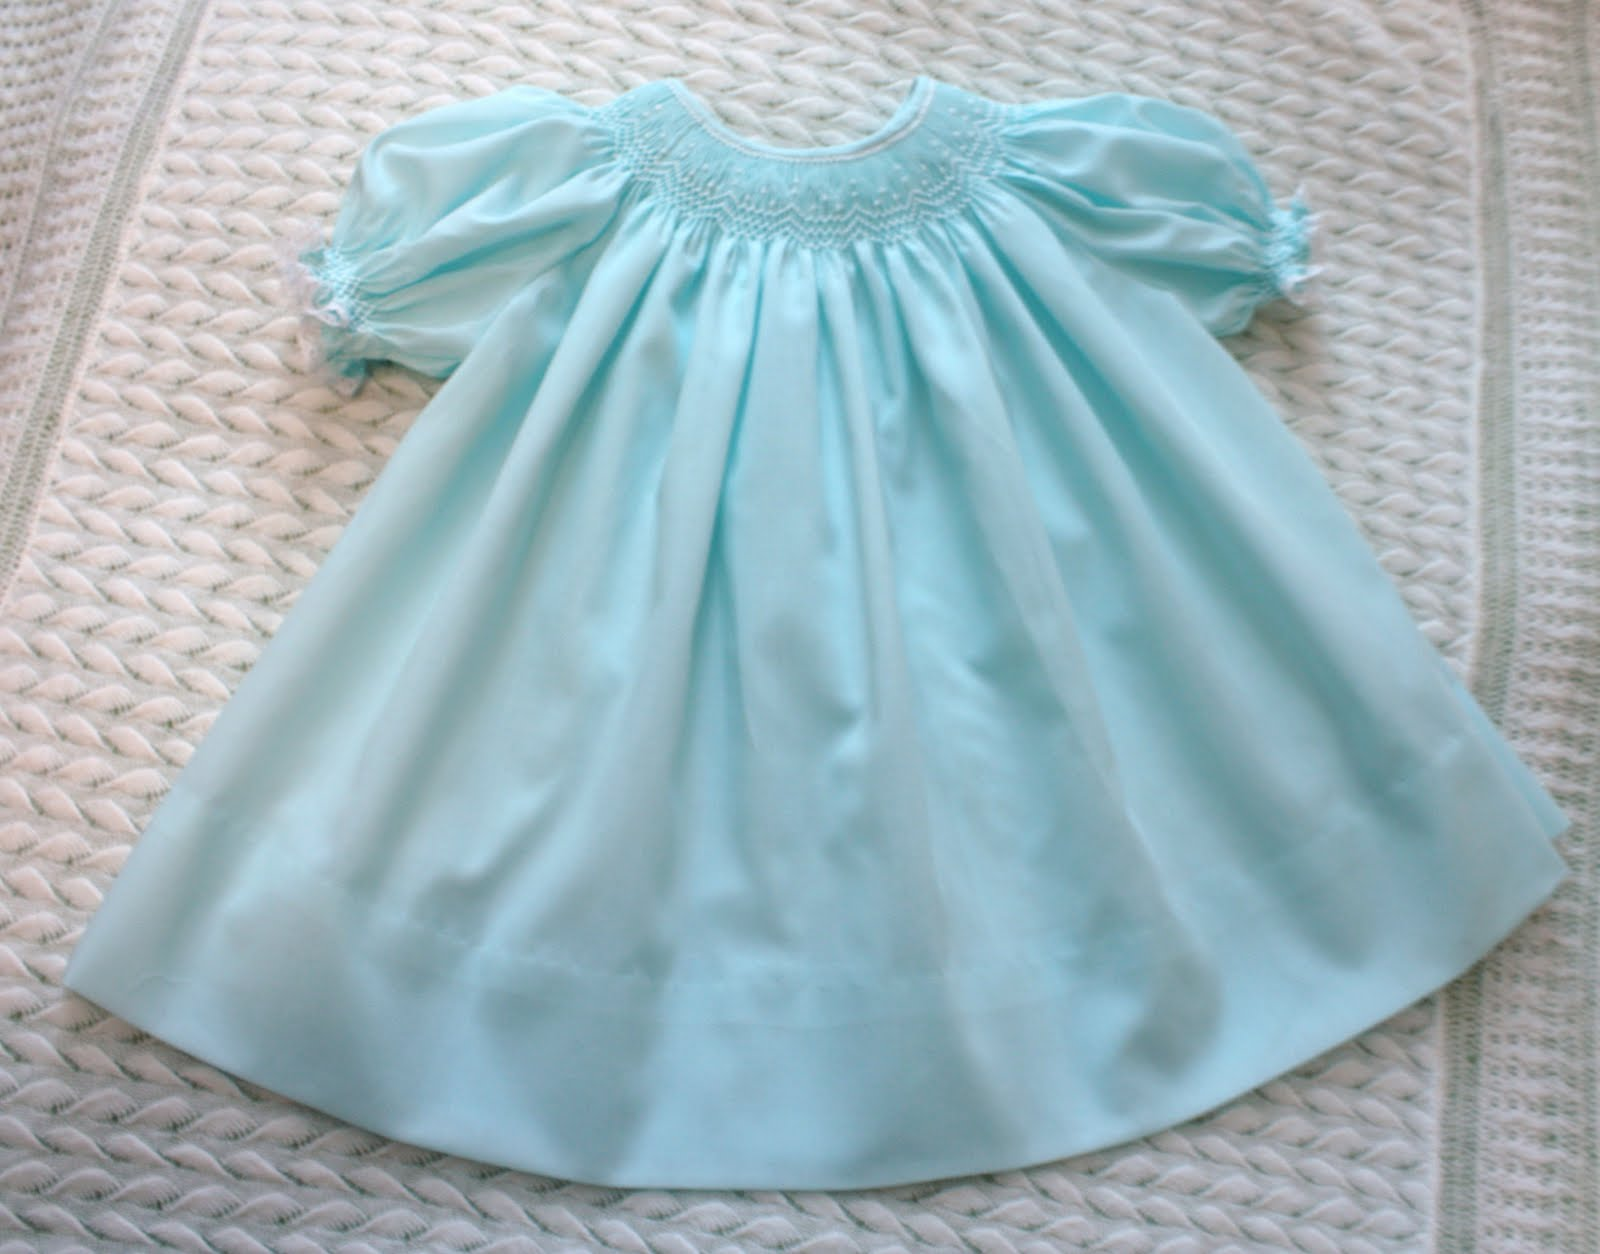 Creations by michie blog free smocking design